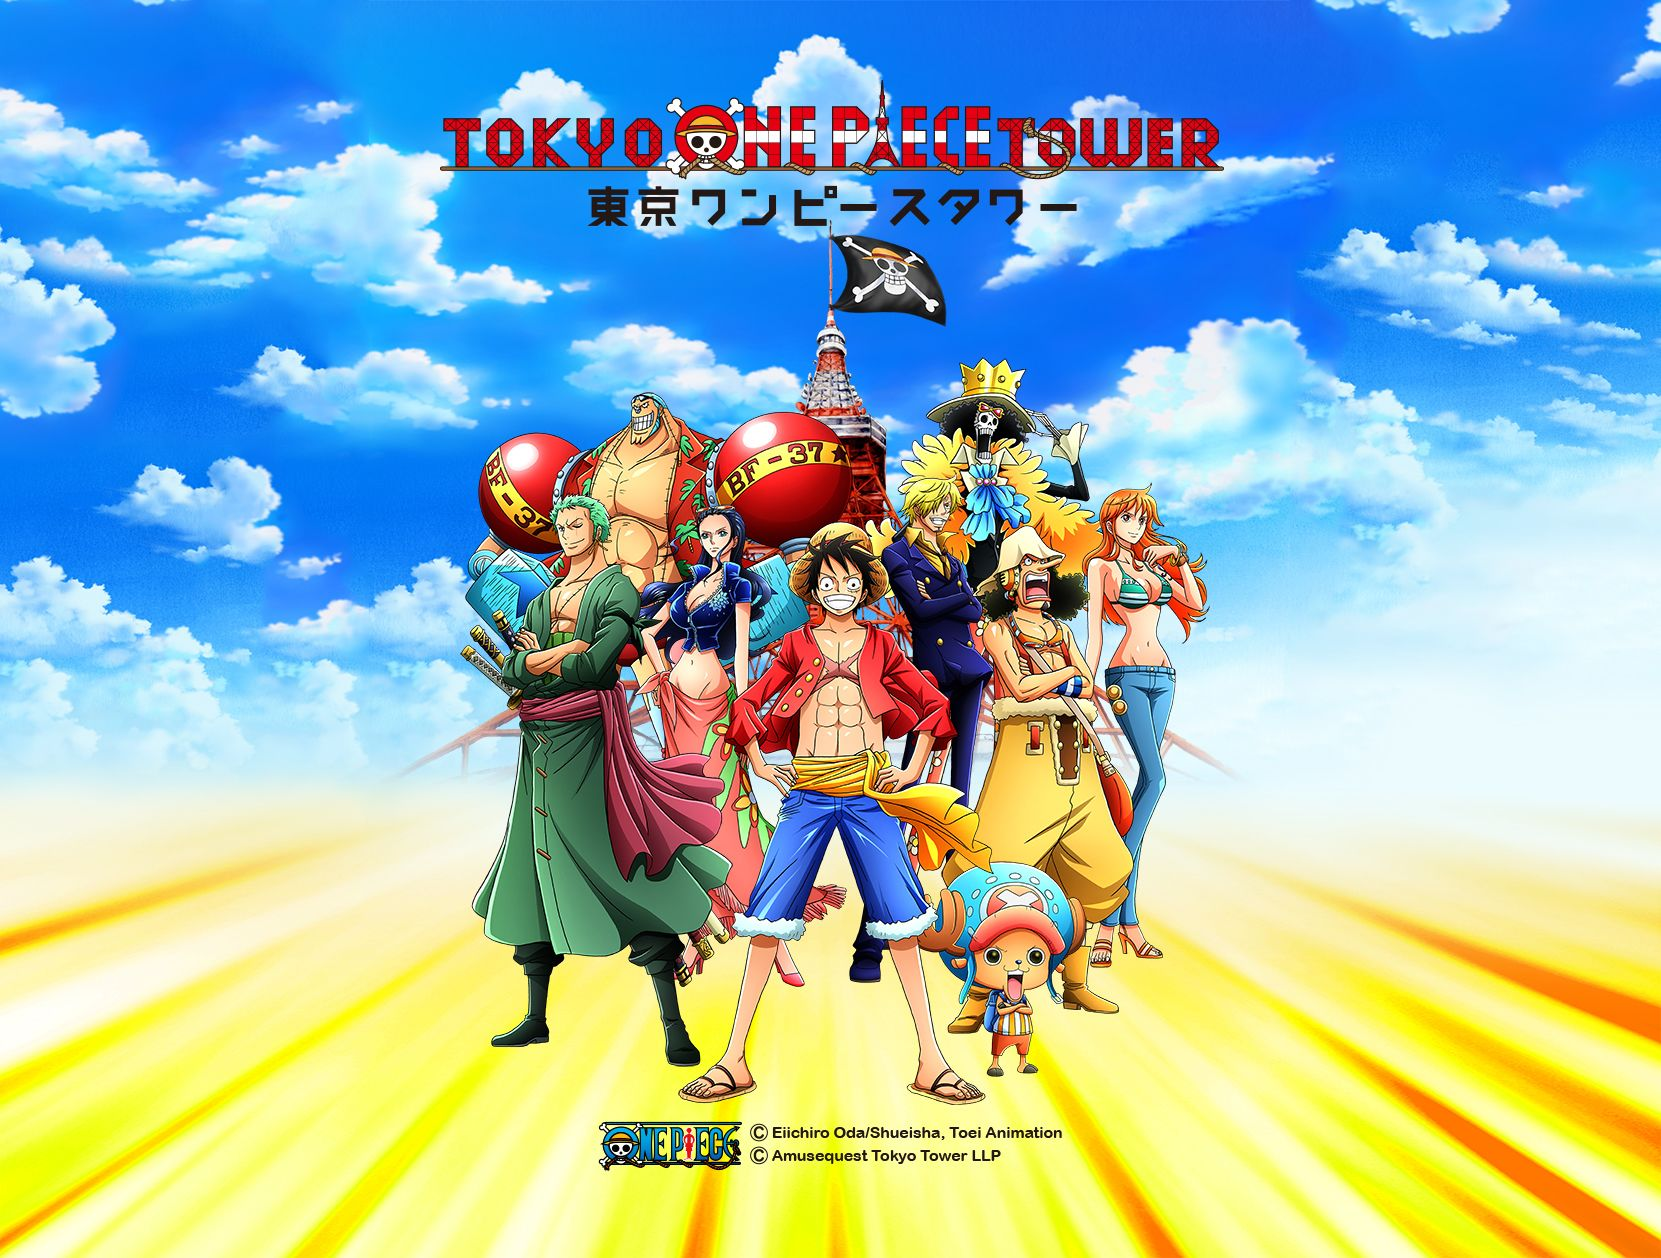 Cartoon graphic for Tokyo One Piece Tower Park